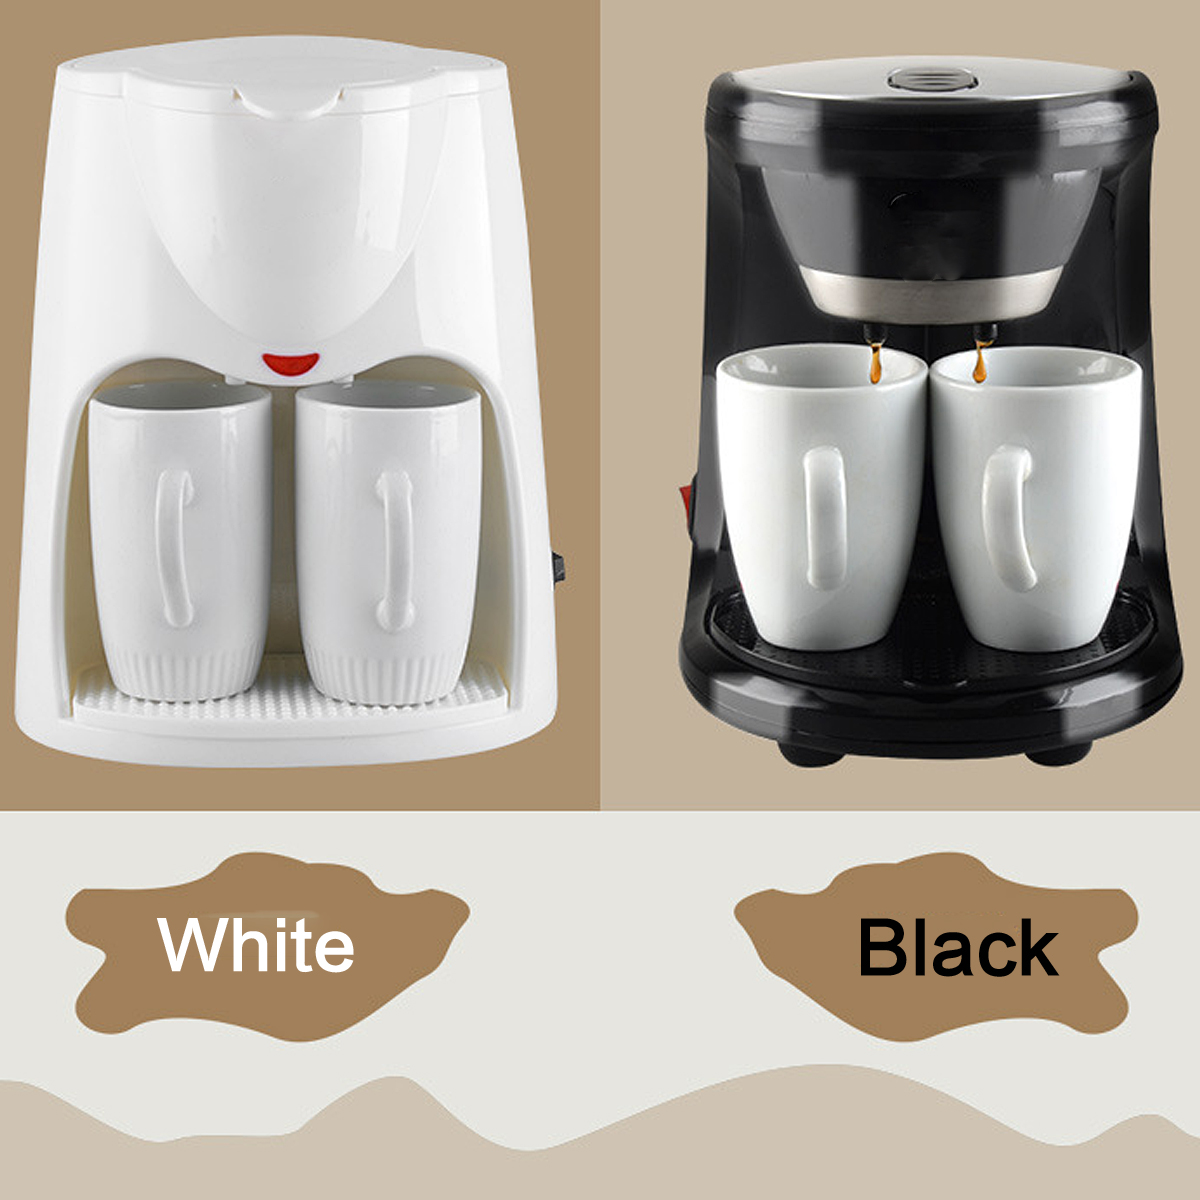 Warmtoo Mini Dual Use Coffee Machine Electric Automatic Coffee Machine 2 Cups Drip Coffees Tea Maker for Home Office Cafe 500w 2 cups drip coffee machine electric espresso coffee maker for home cafe bar coffee pot automatic coffee maker